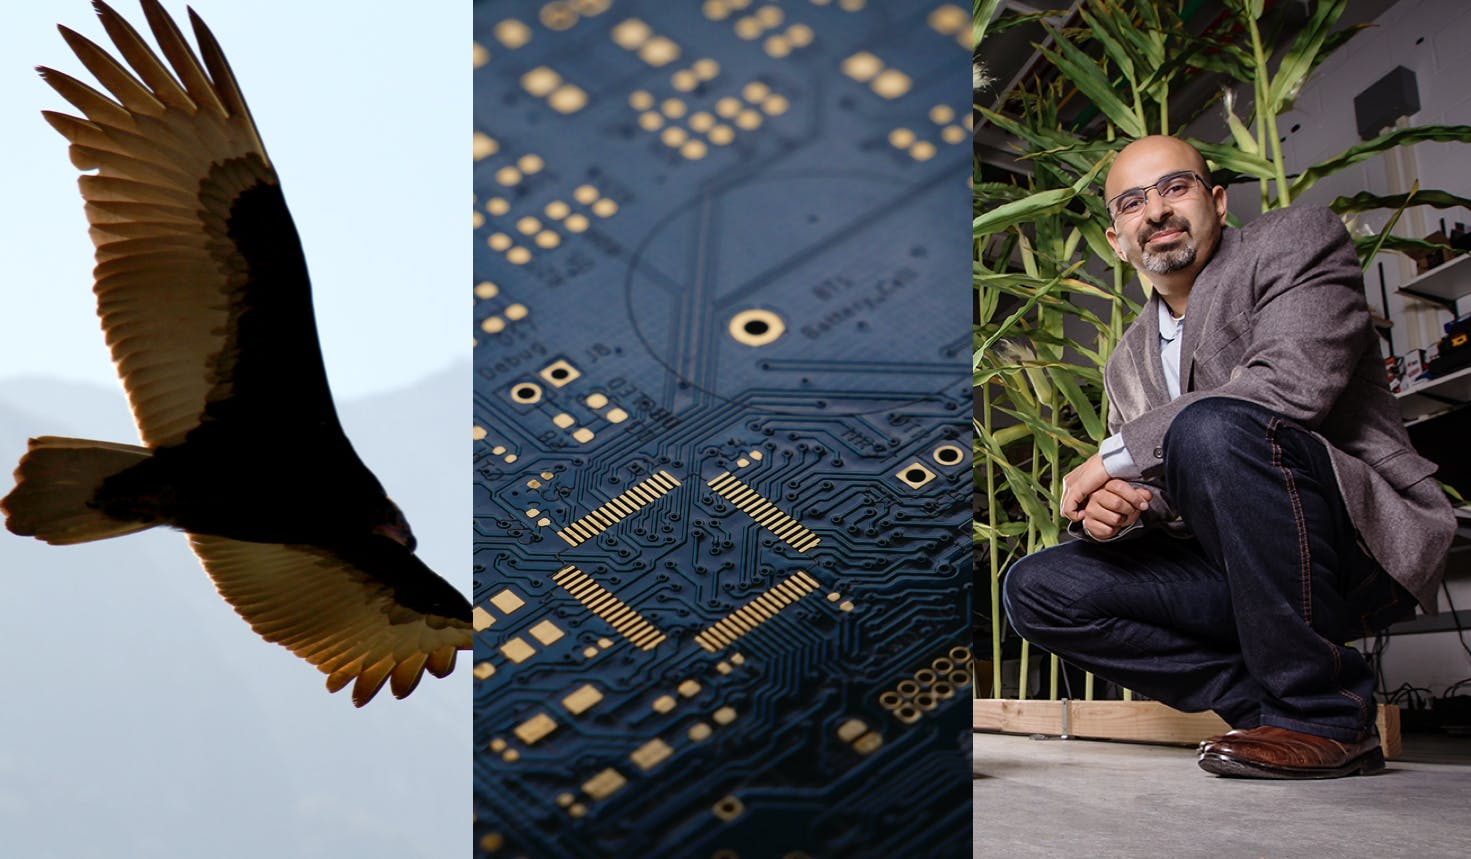 New drone design takes notes from nature–Apple goes solo on next-gen Macbook chips–Illinois CS professor Girish Chowdhary discusses the future of autonomous farming